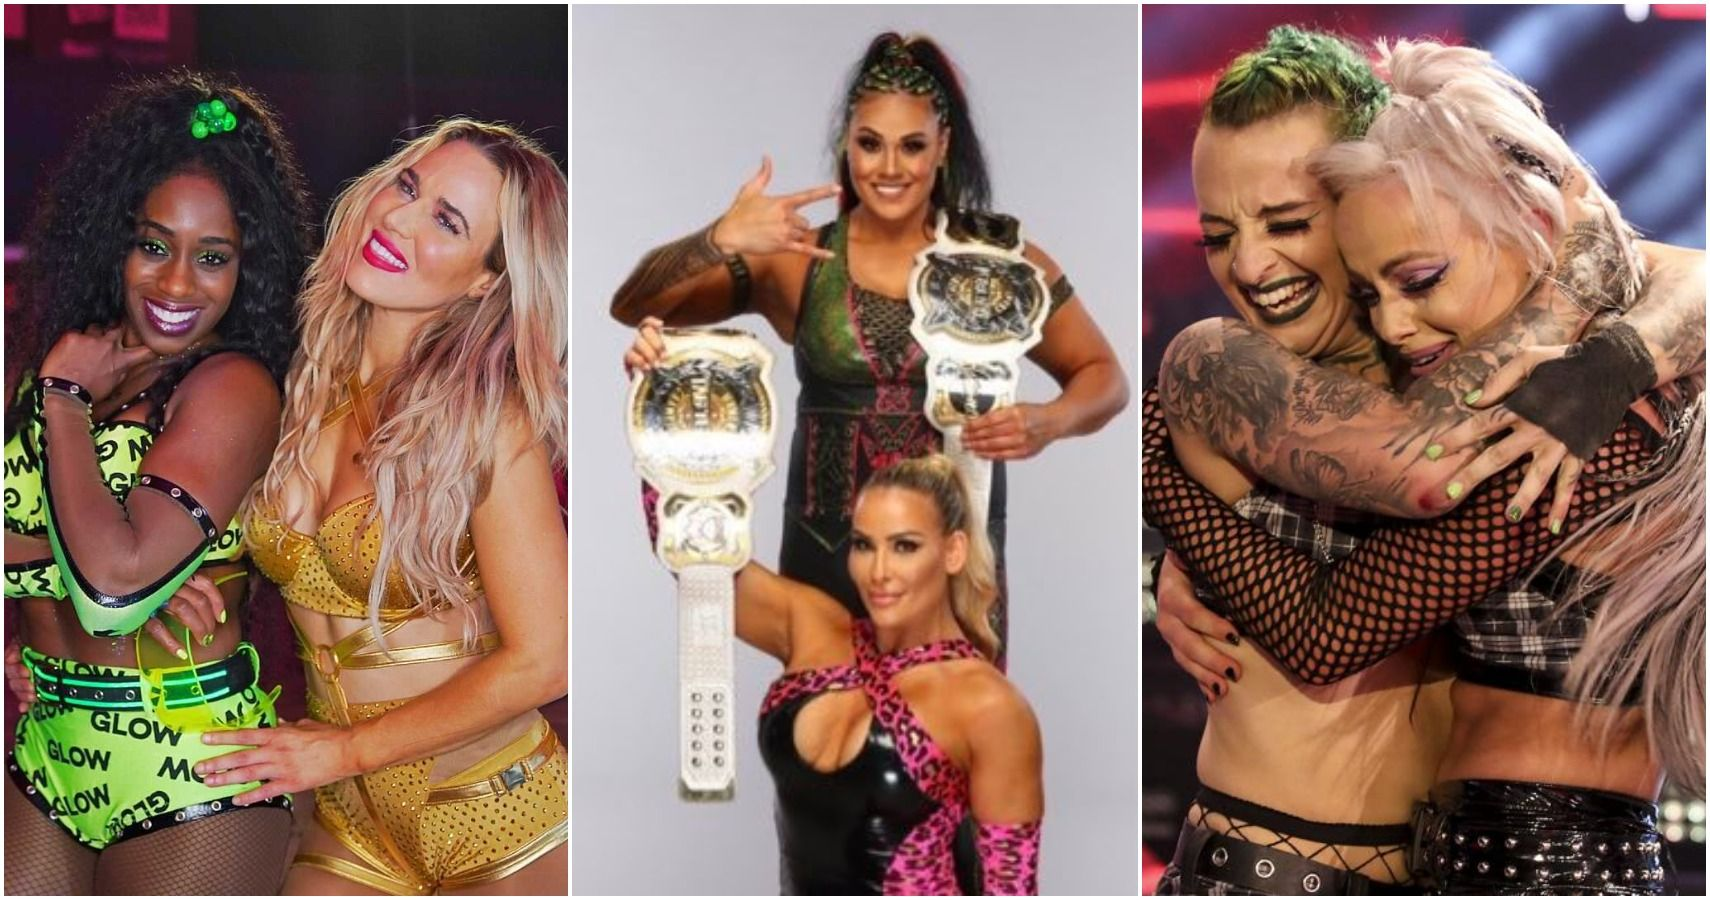 Latest Releases Prove WWE's Women's Tag Titles Are Not Long For This World [Theory]